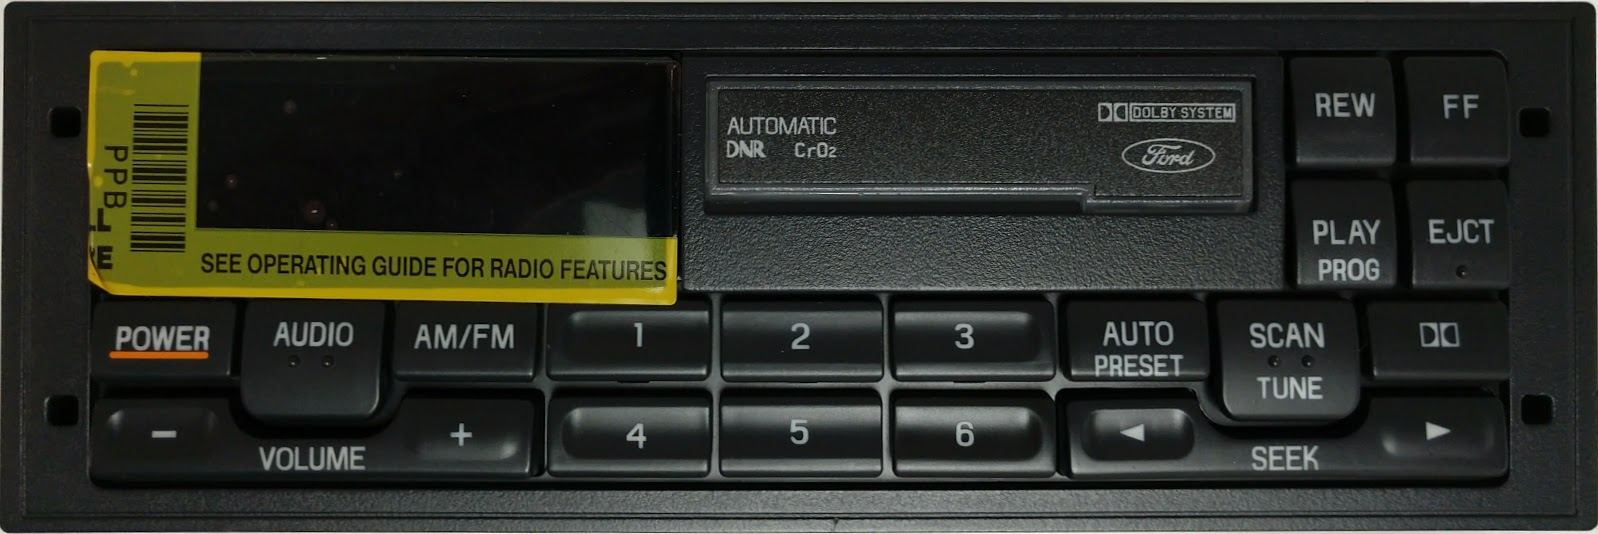 Dodge Town And Country >> Town Car 1993-1994 Cassette radio for Premium Sound REMAN